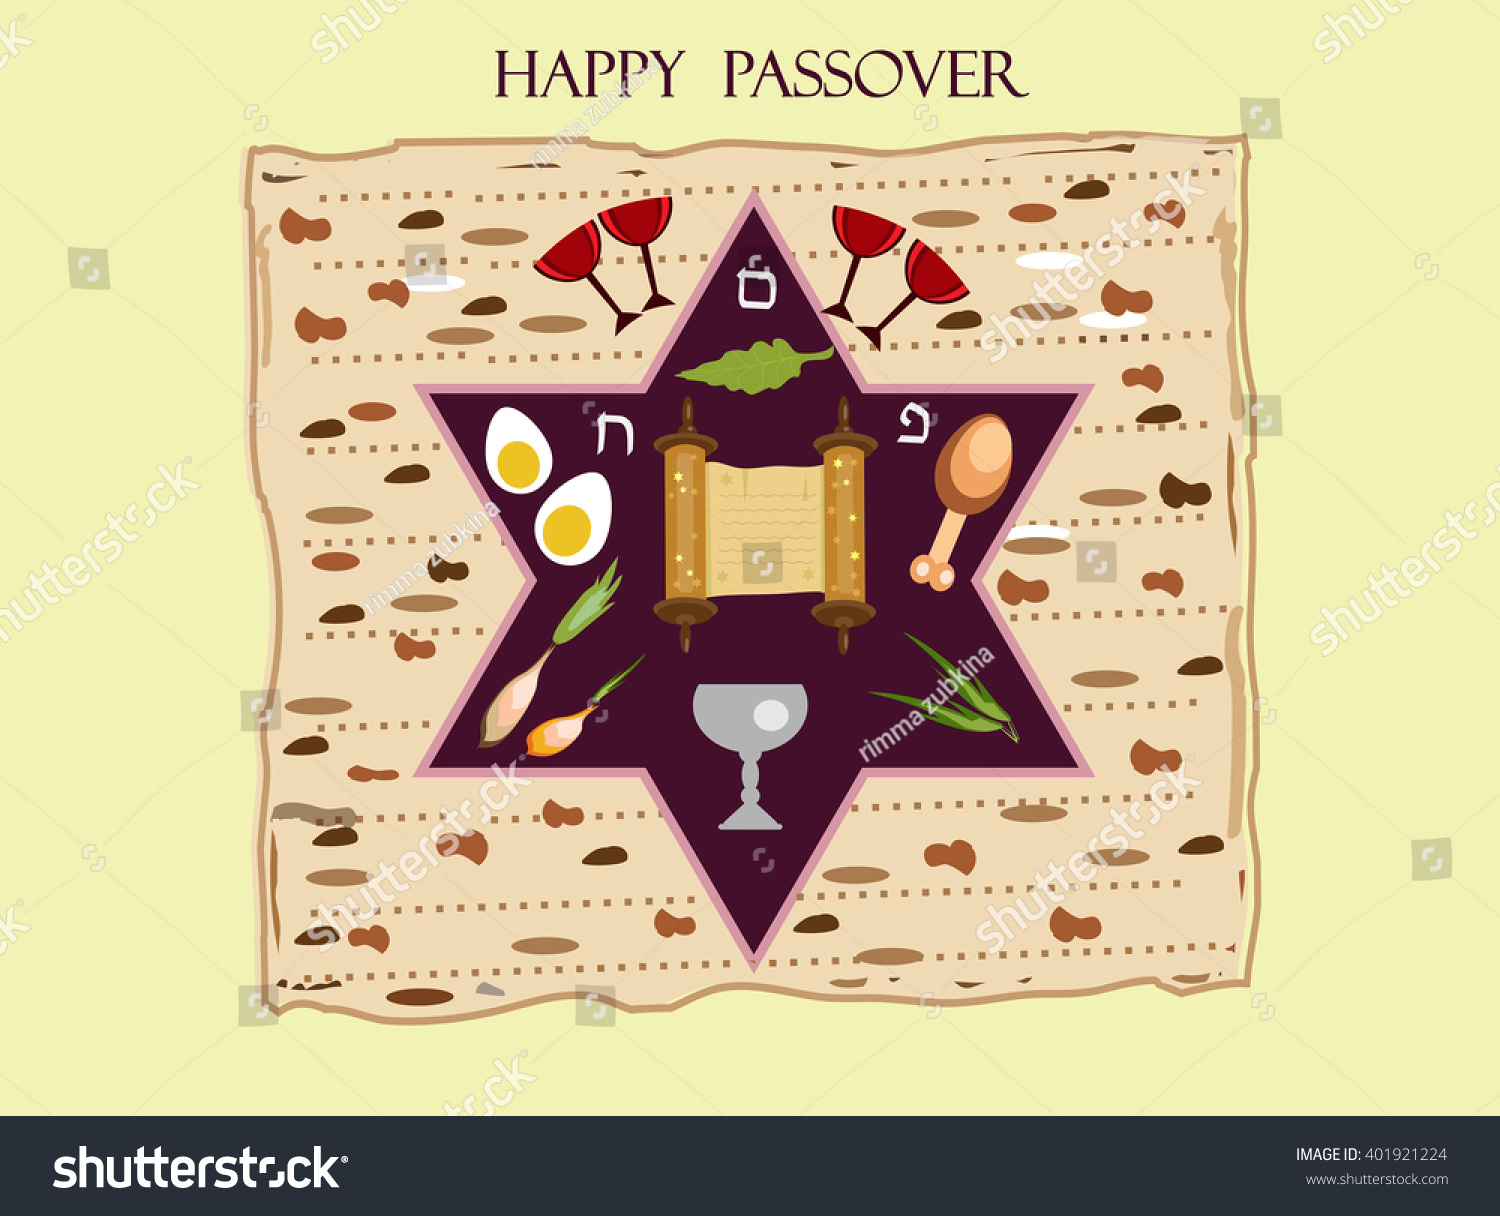 Royalty Free Stock Illustration Of Holiday Passover Background